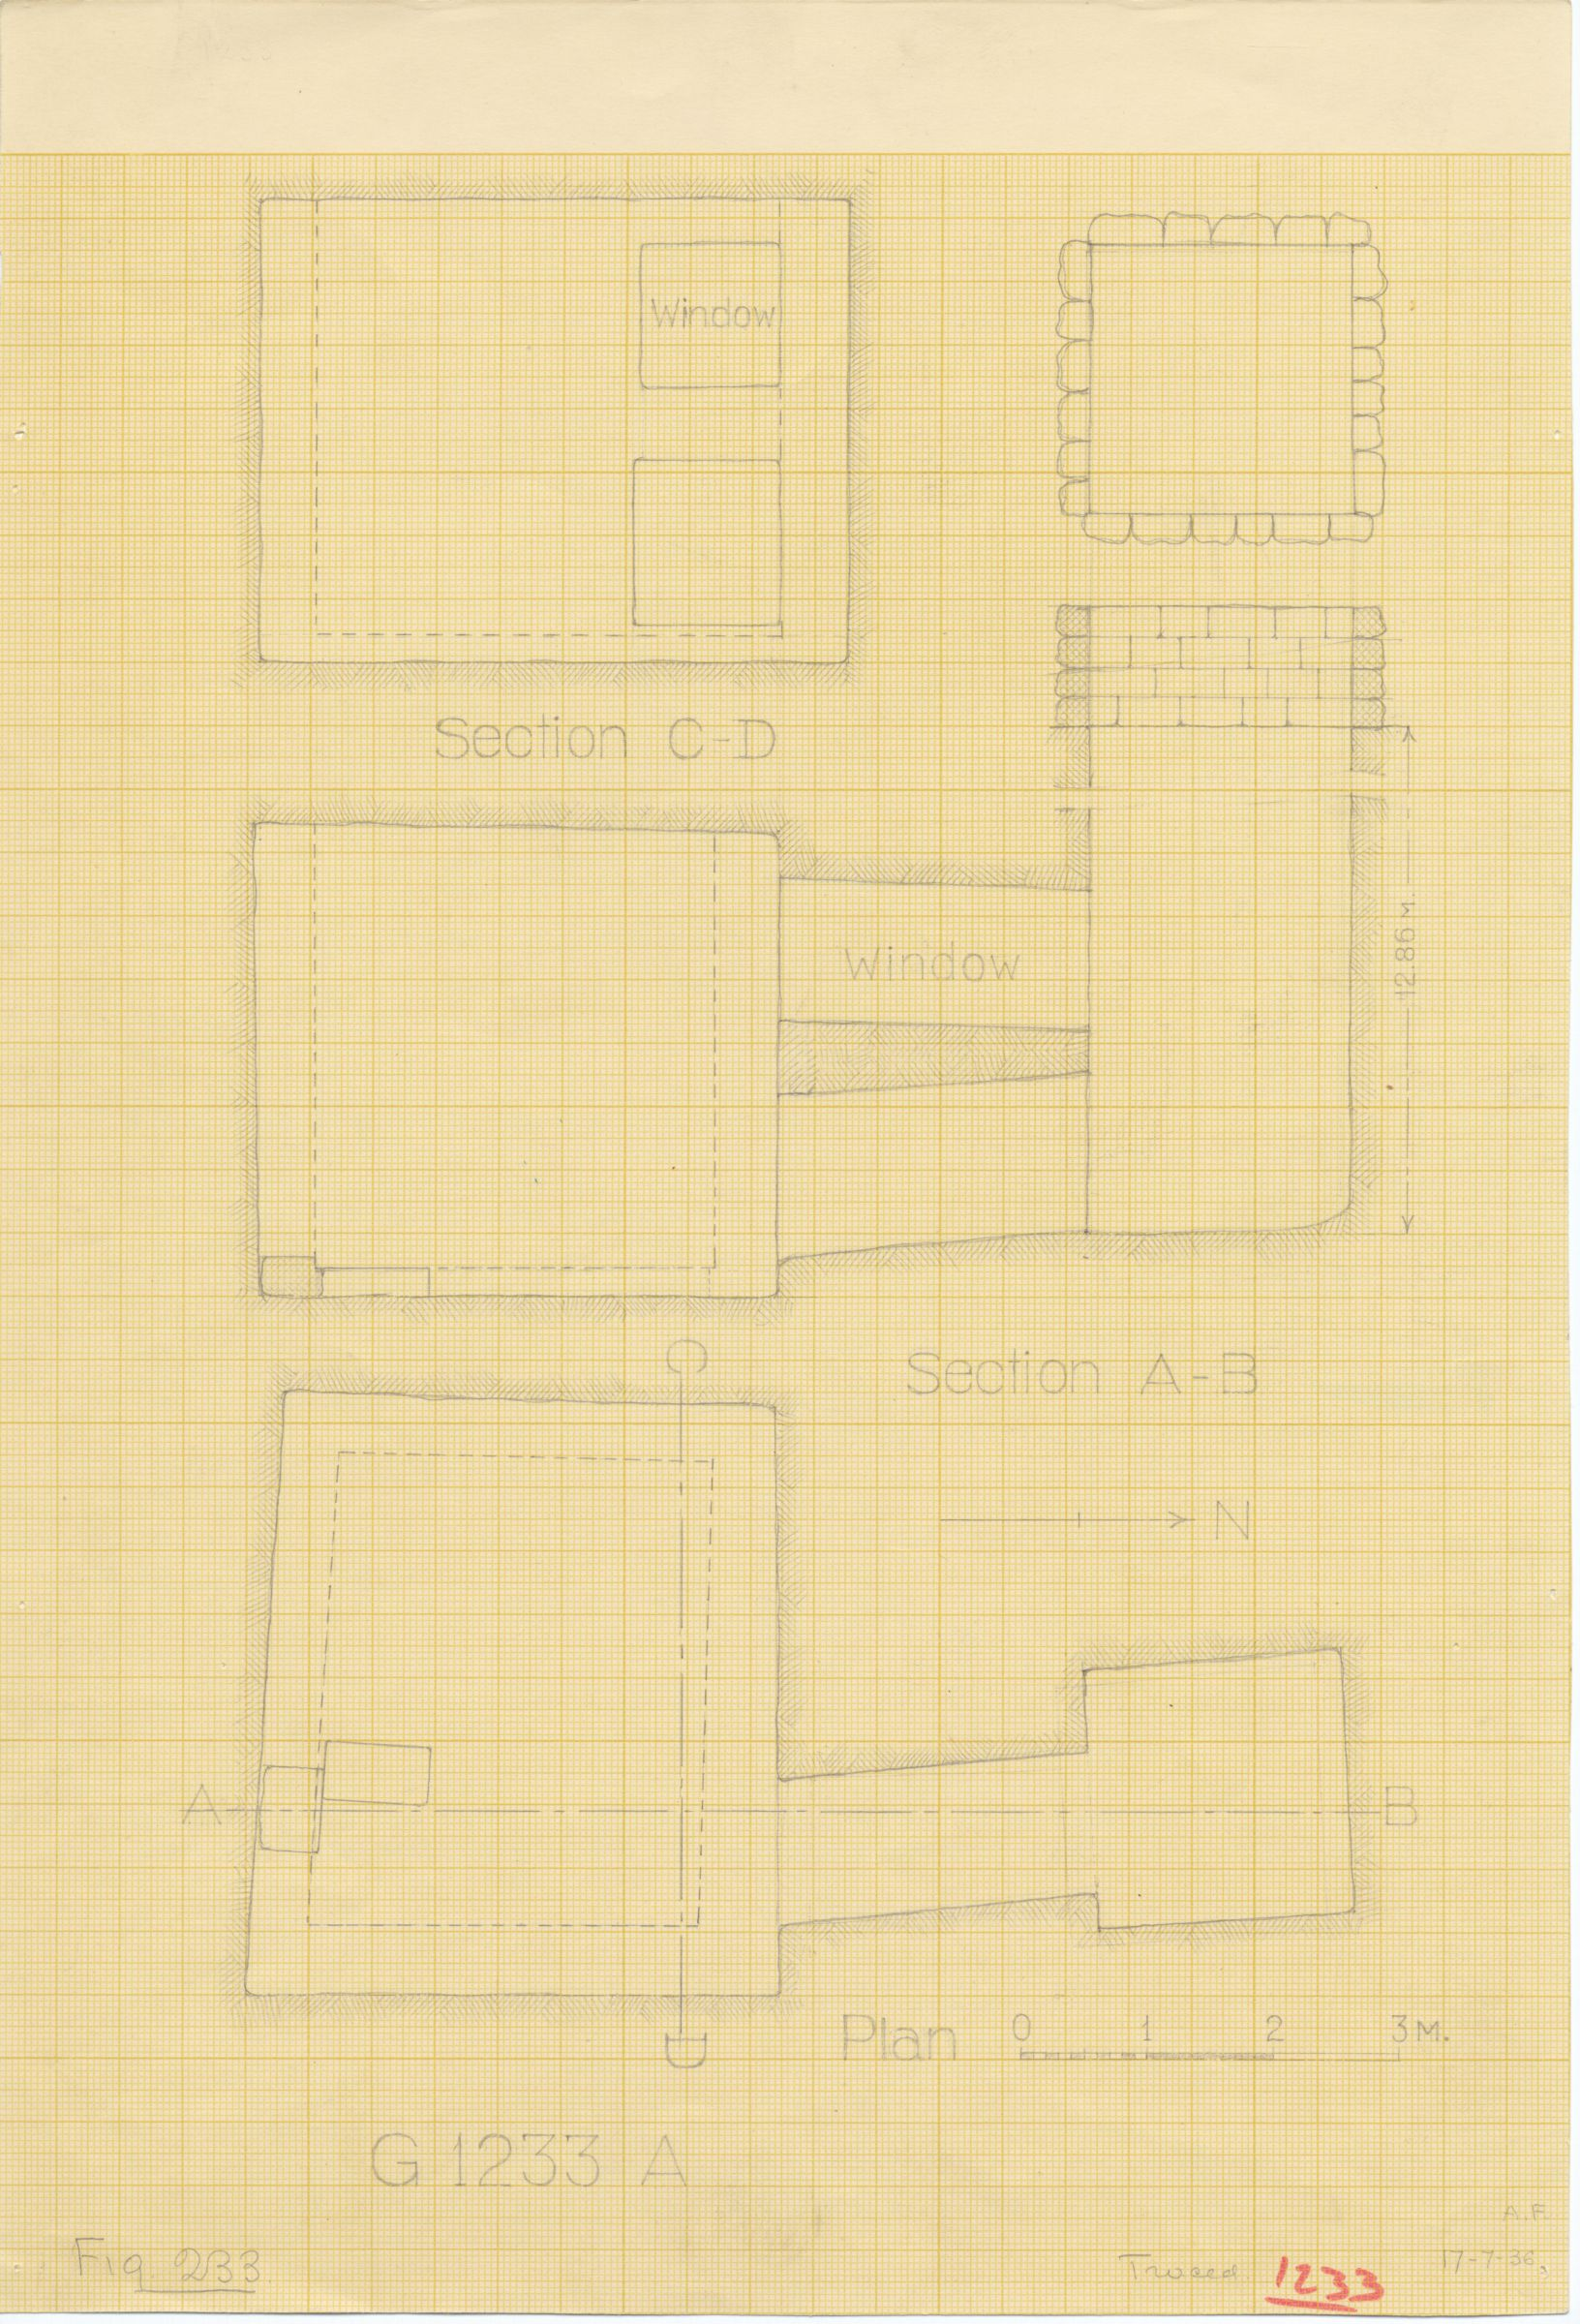 Maps and plans: G 1233, Shaft A